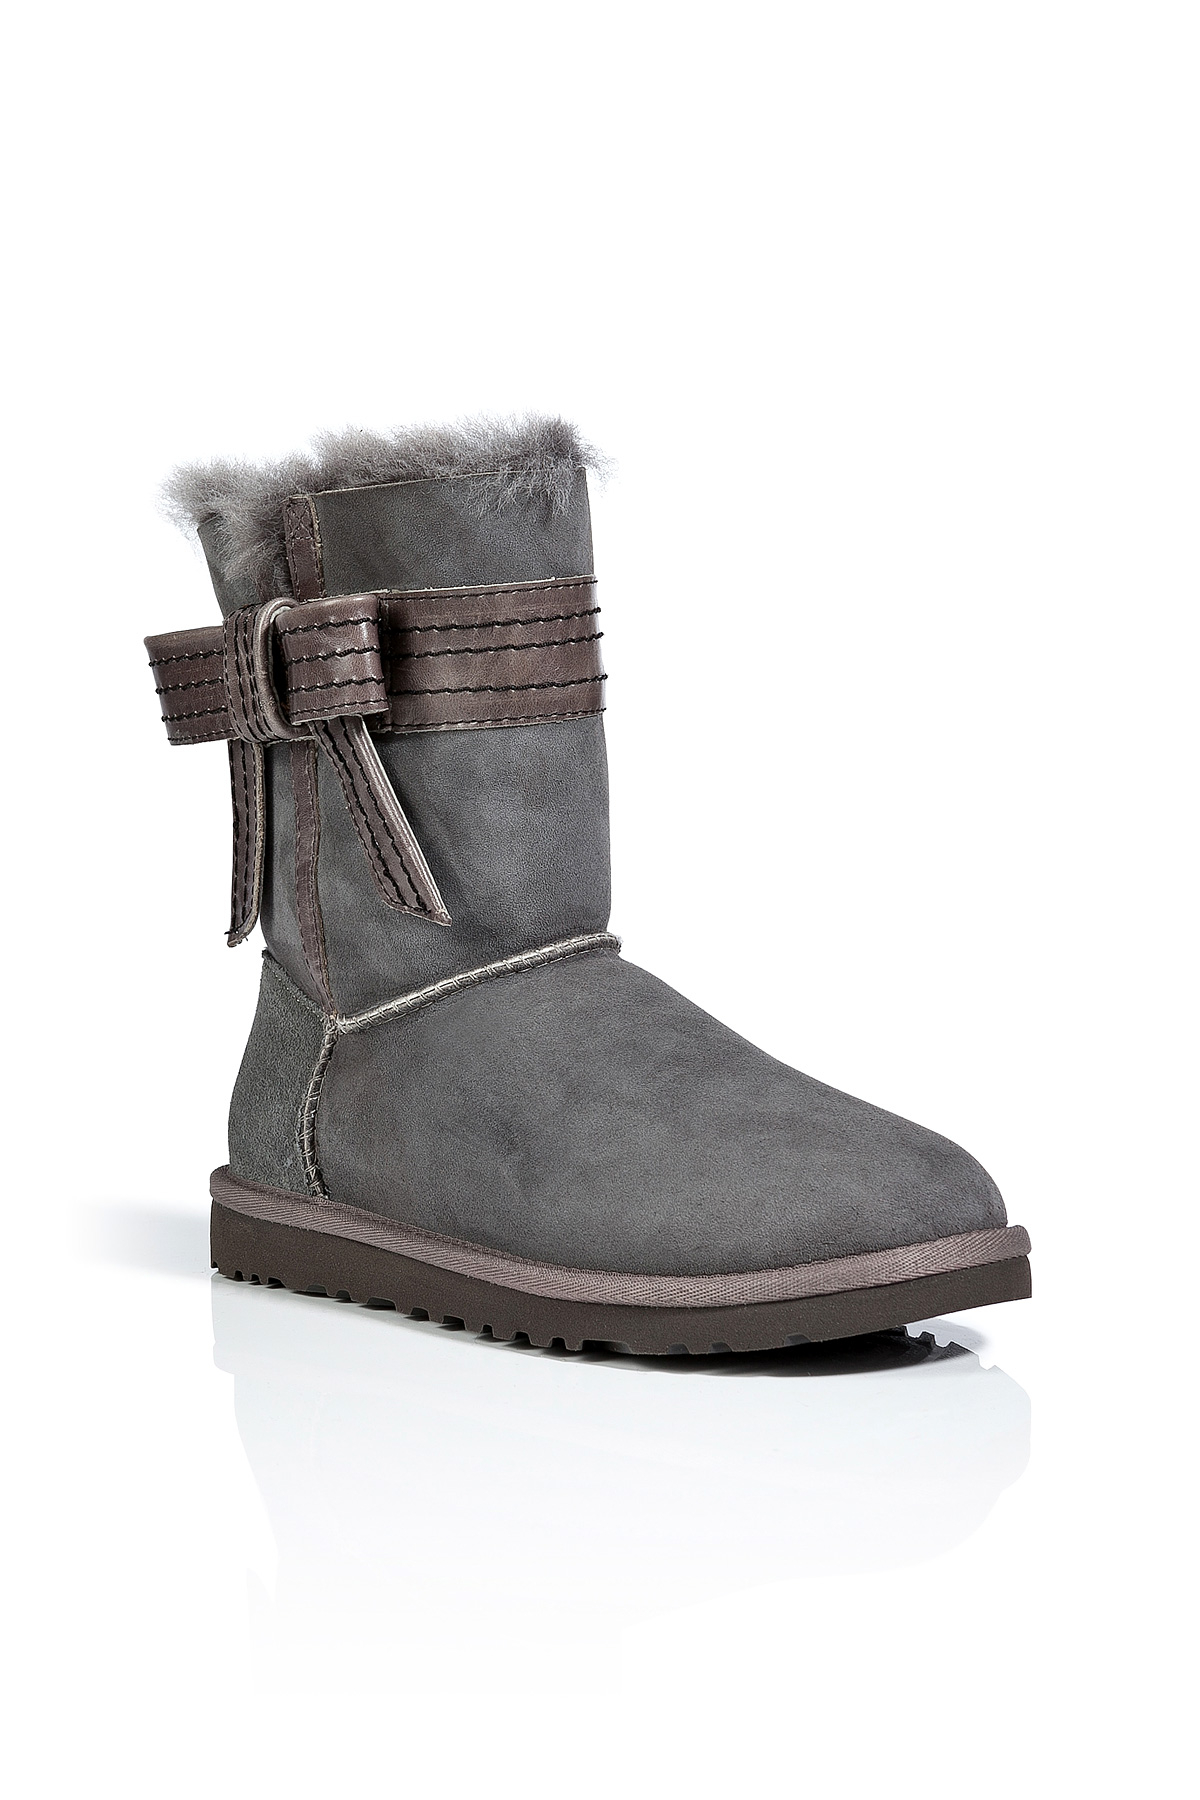 Ugg Suede Josette Boots In Grey In Gray Lyst